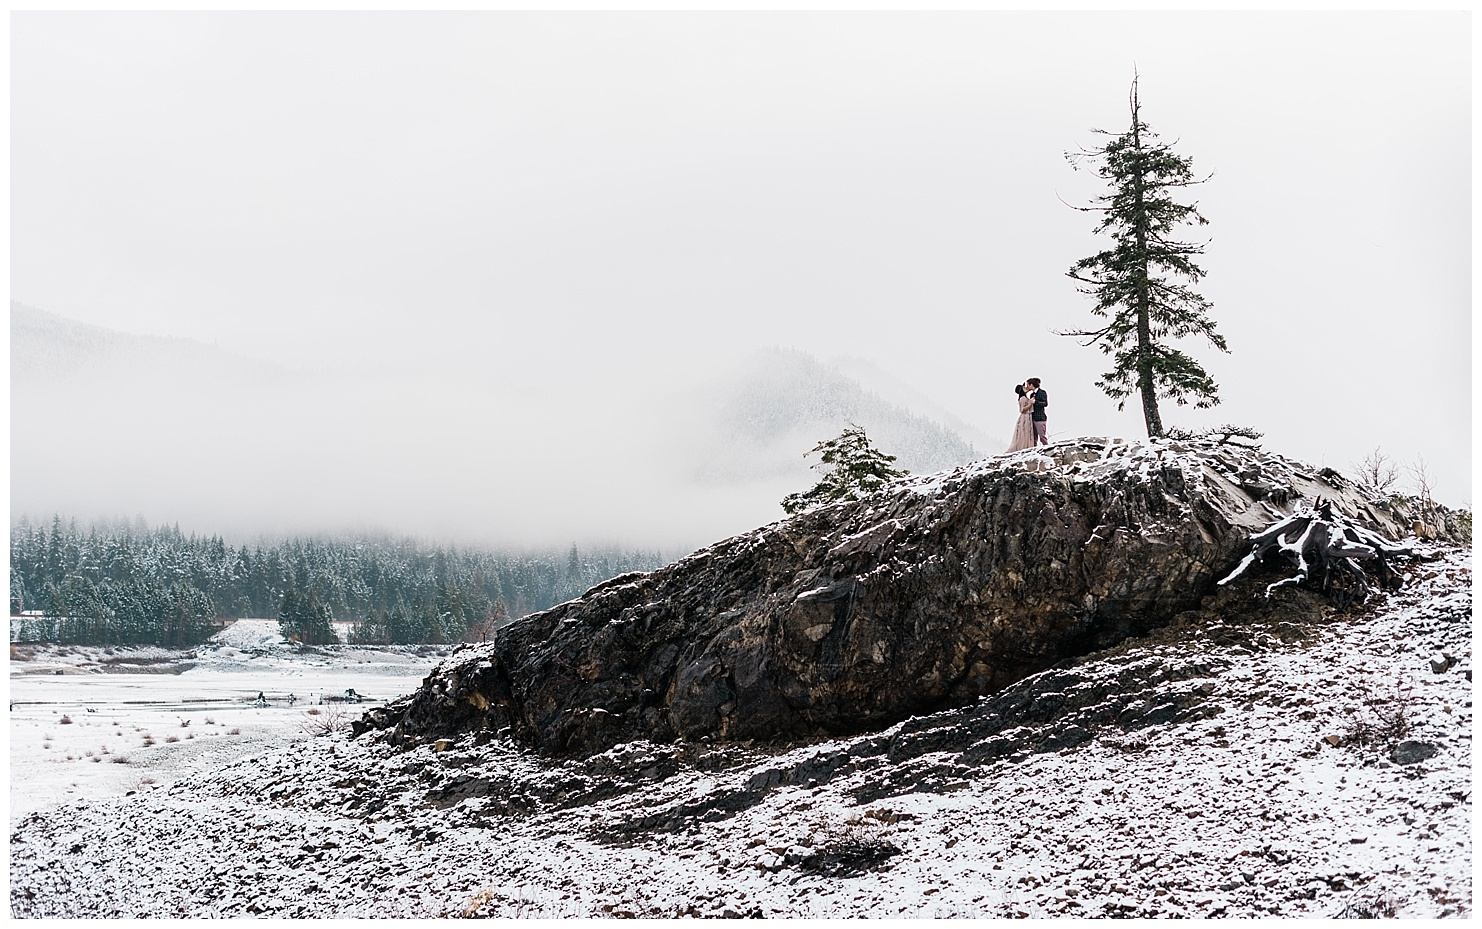 Snoqualmie Pass Elopement Inspiration by Forthright Photo, PNW Wedding & Elopement Photographers